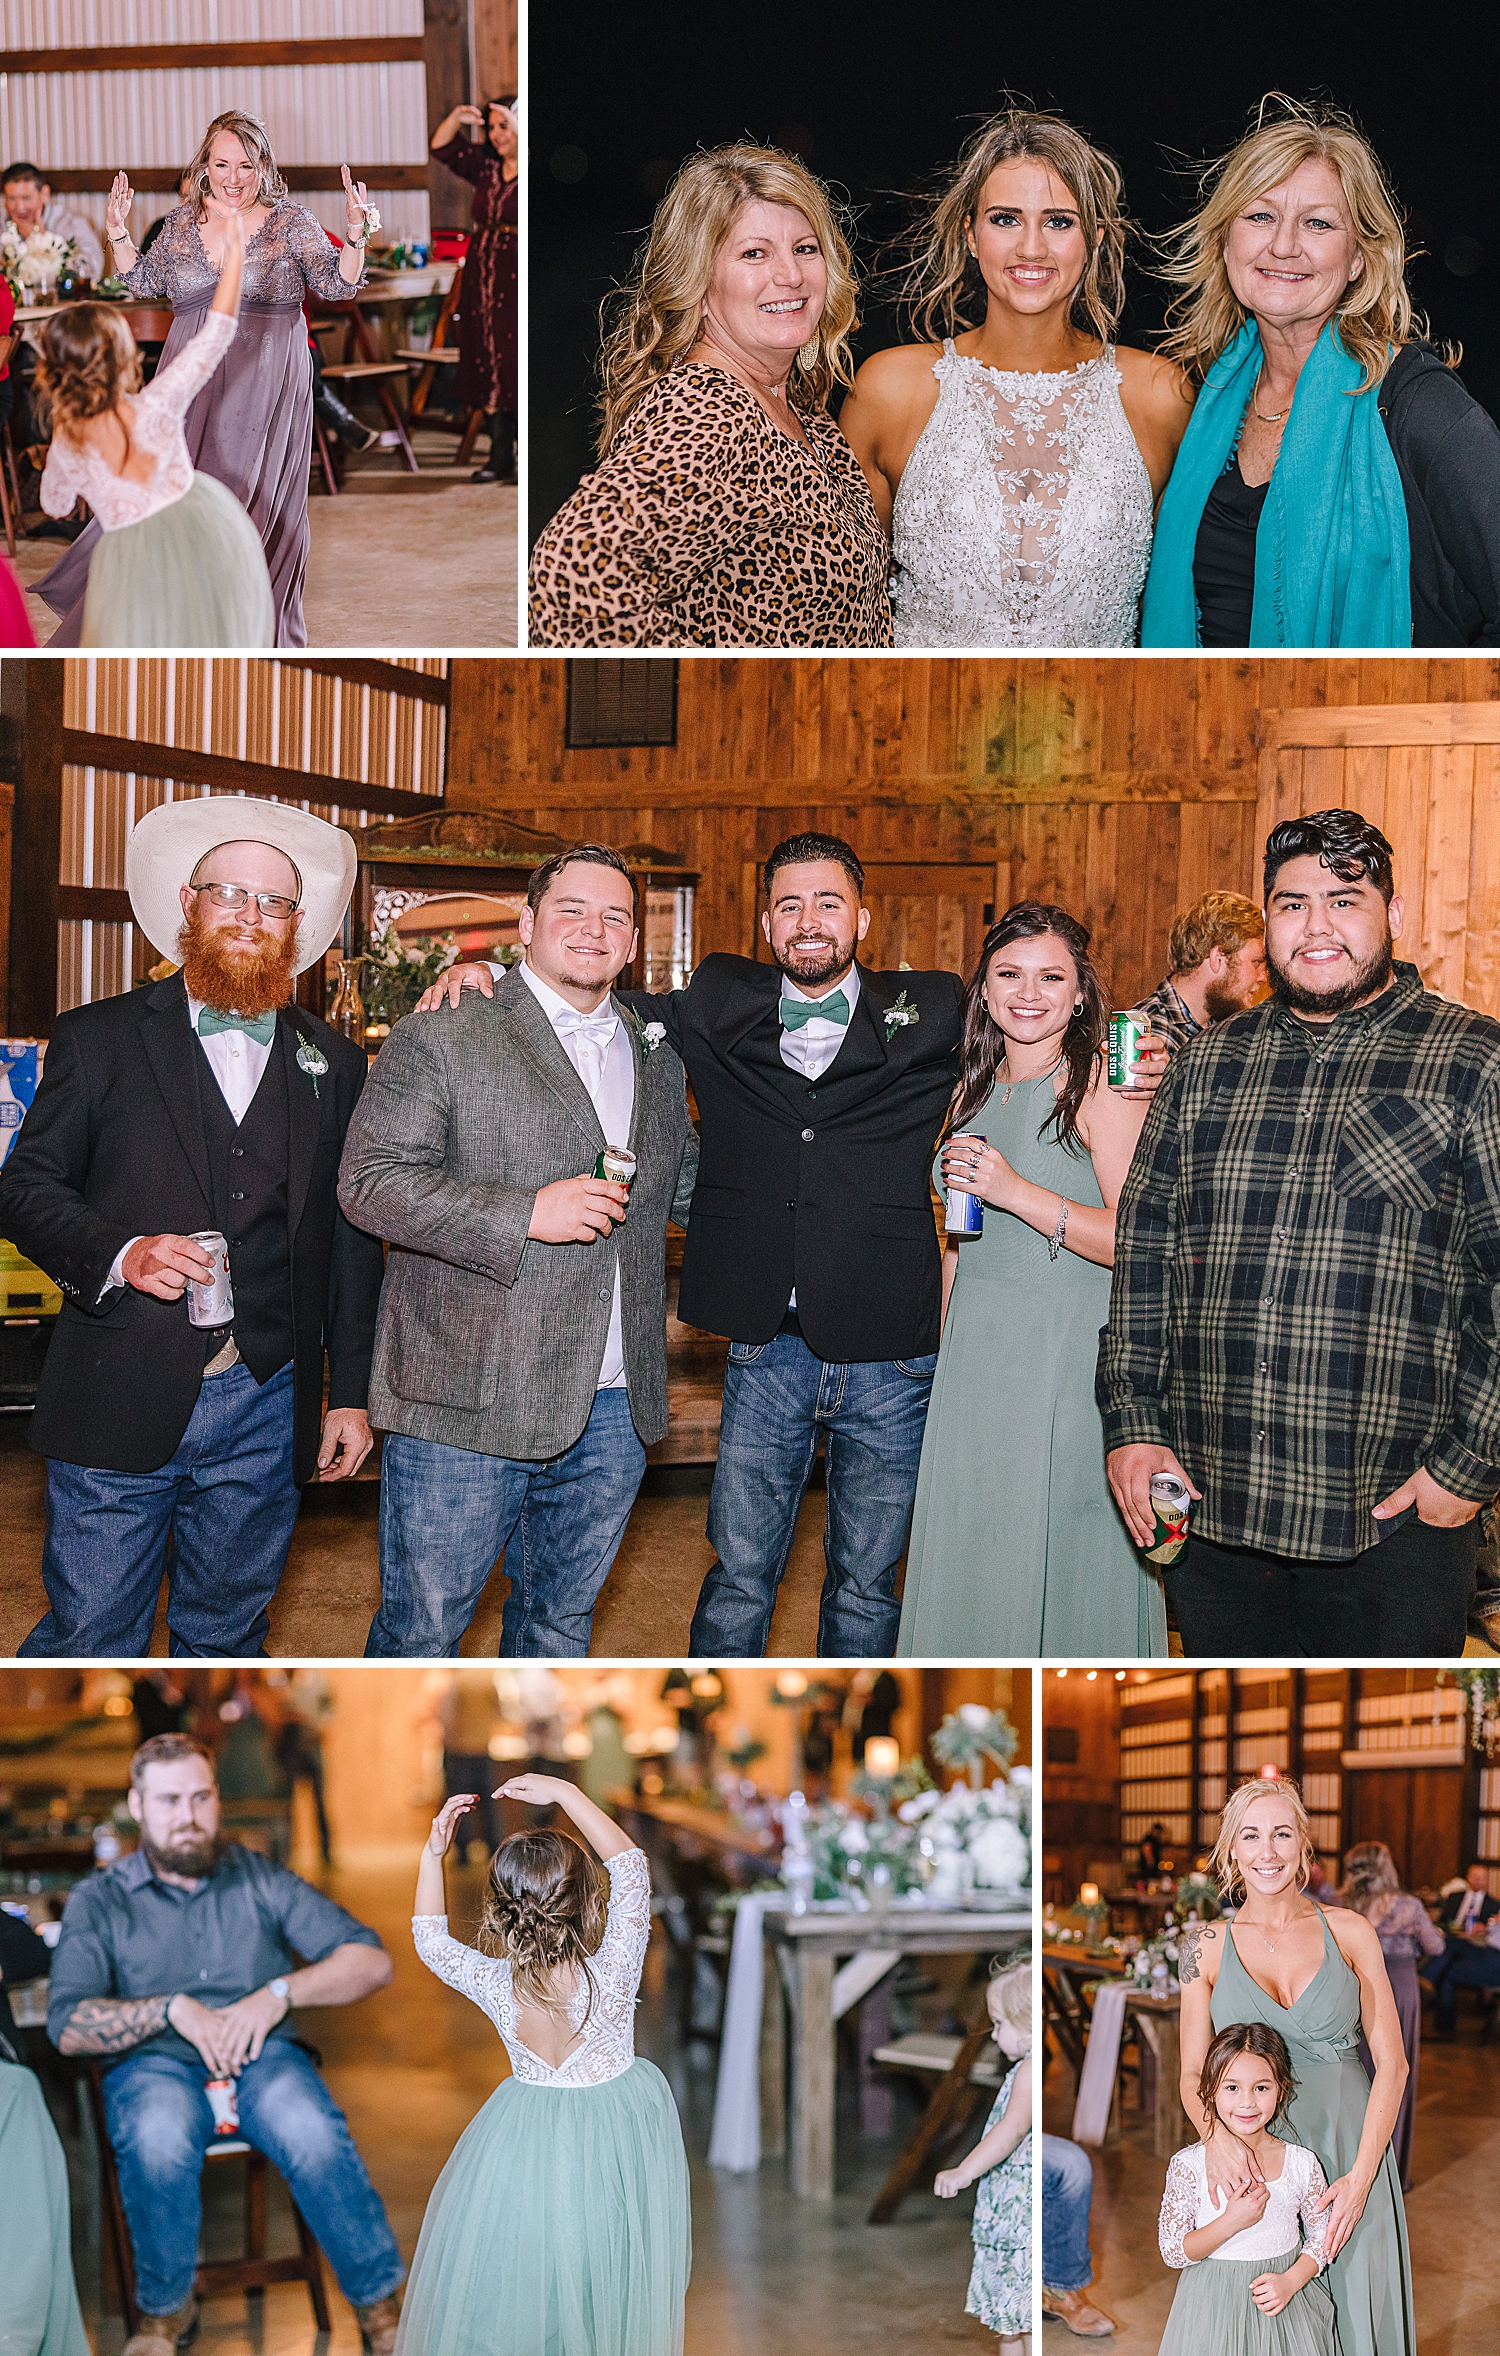 Allen-Farmhaus-New-Braunfels-Wedding-Carly-Barton-Photography_0099.jpg